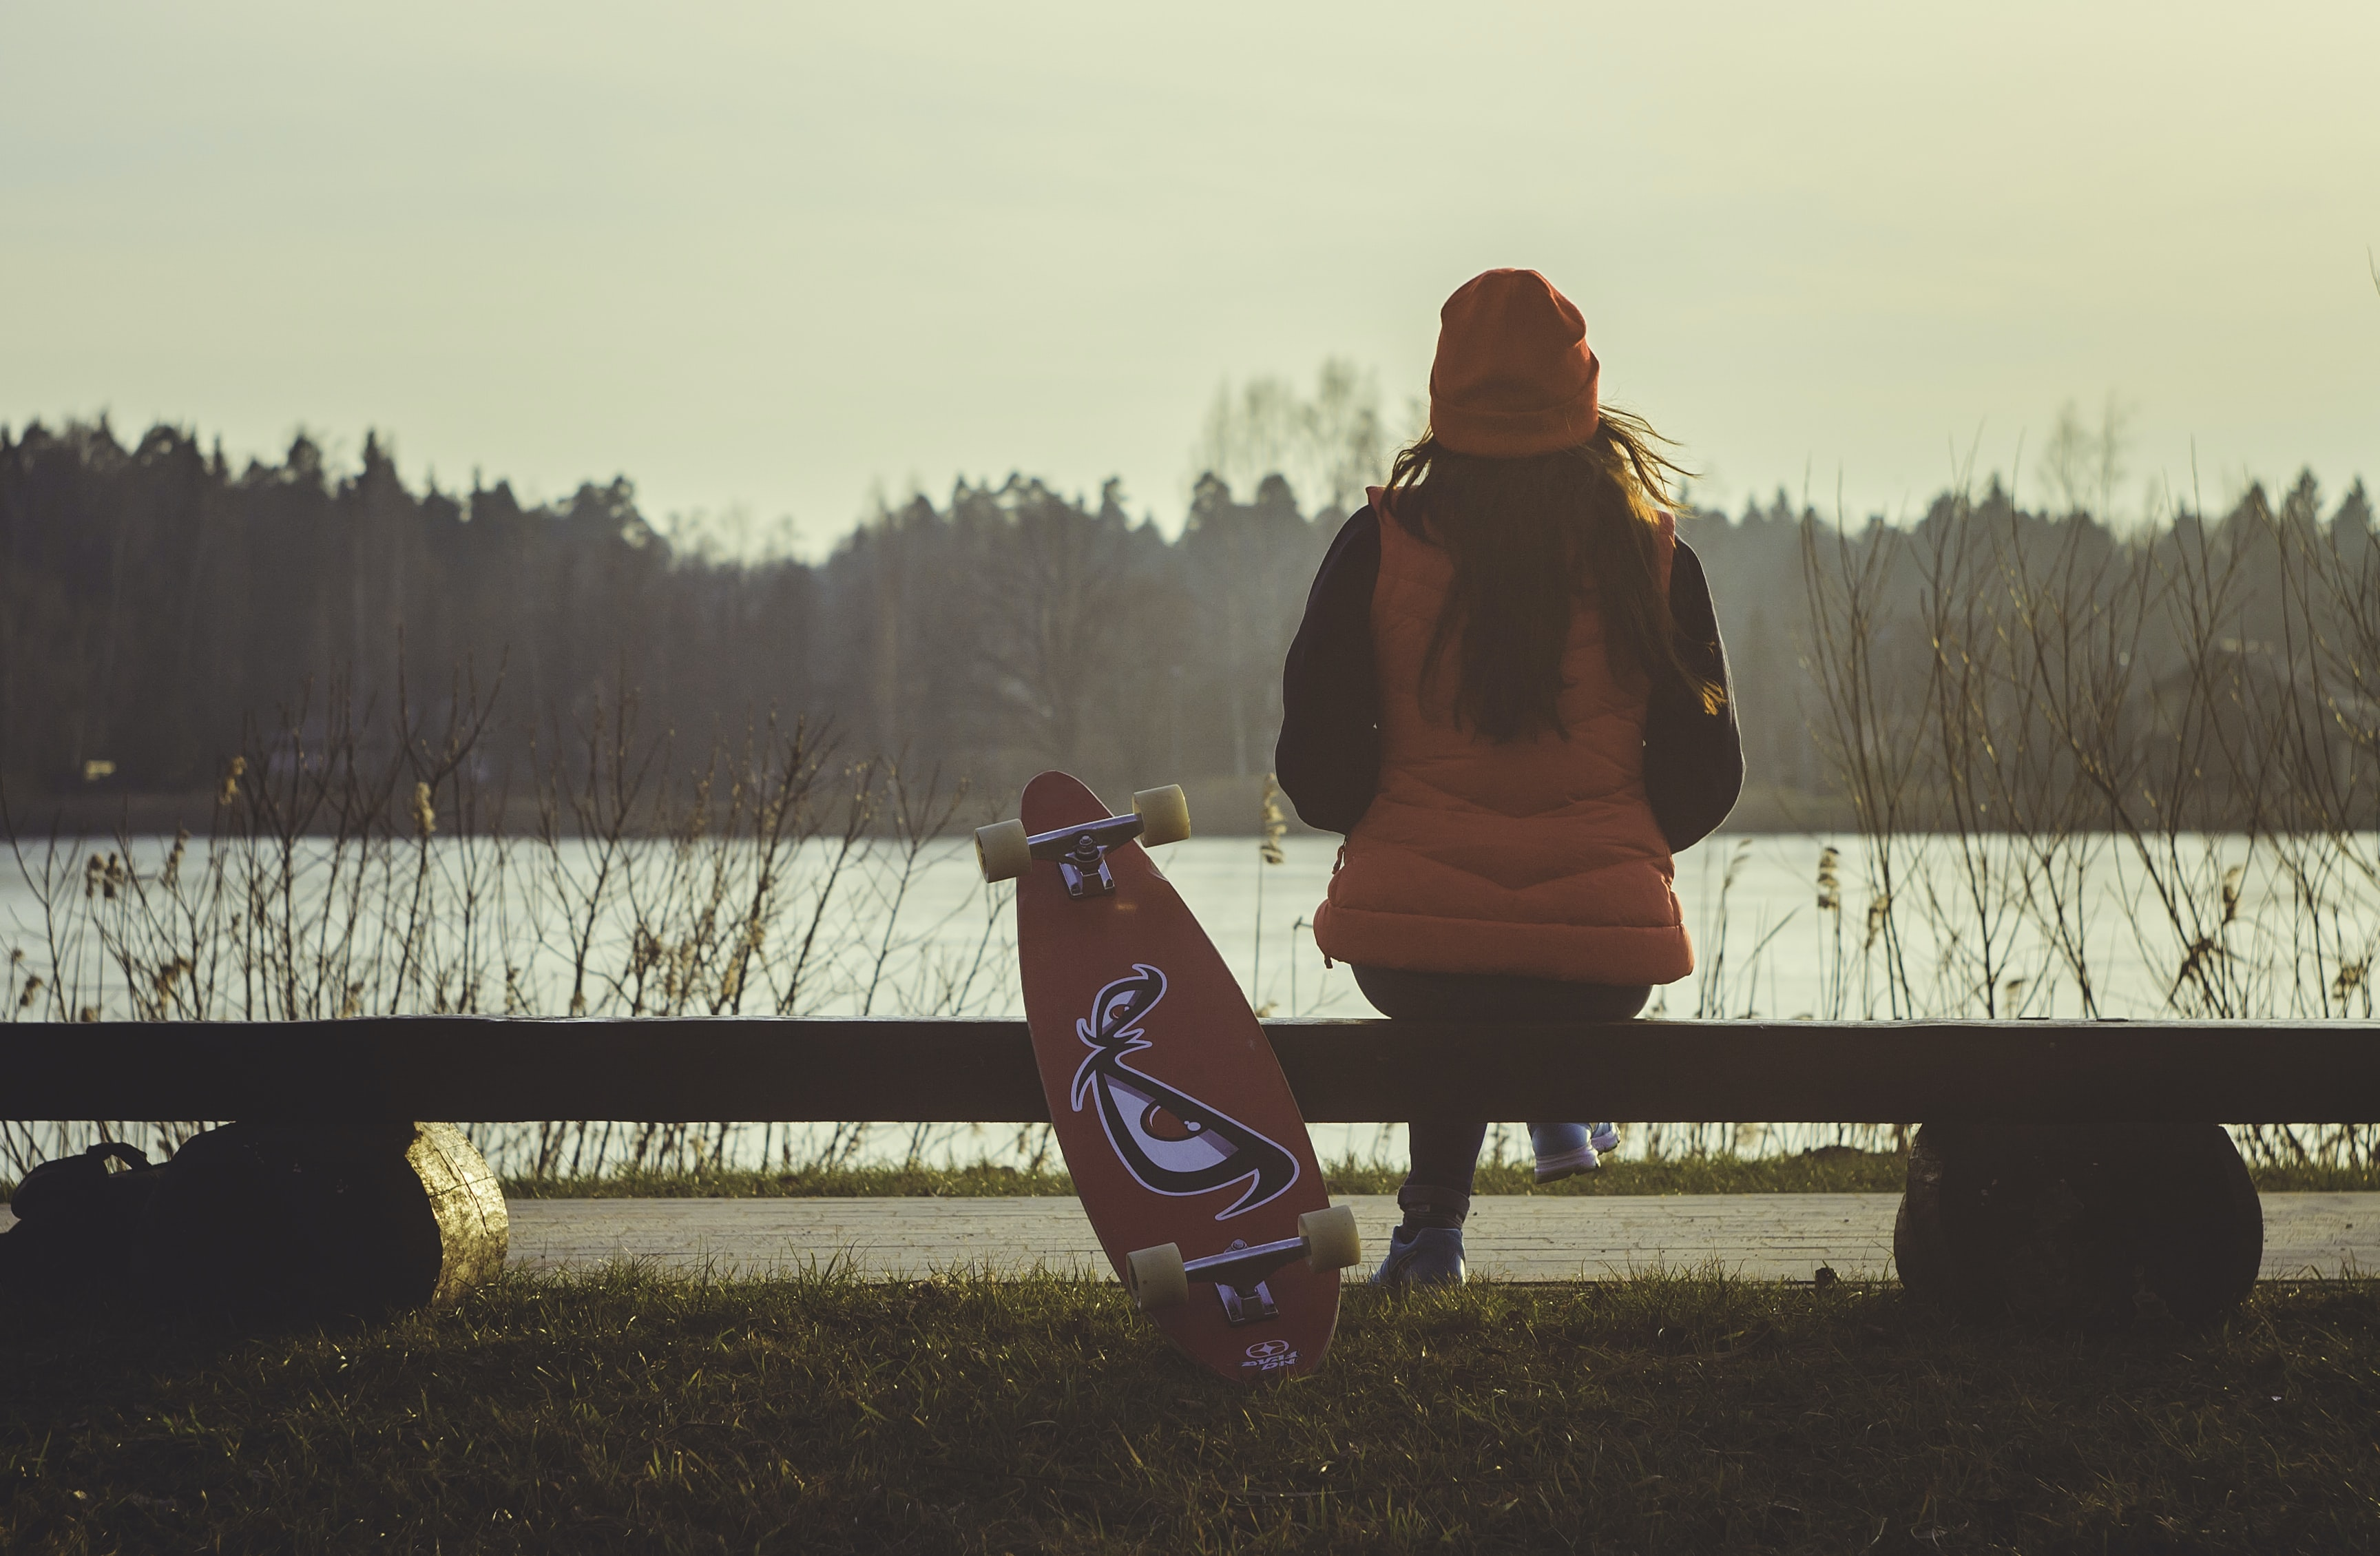 Woman in orange with a long board sitting on a lake bench